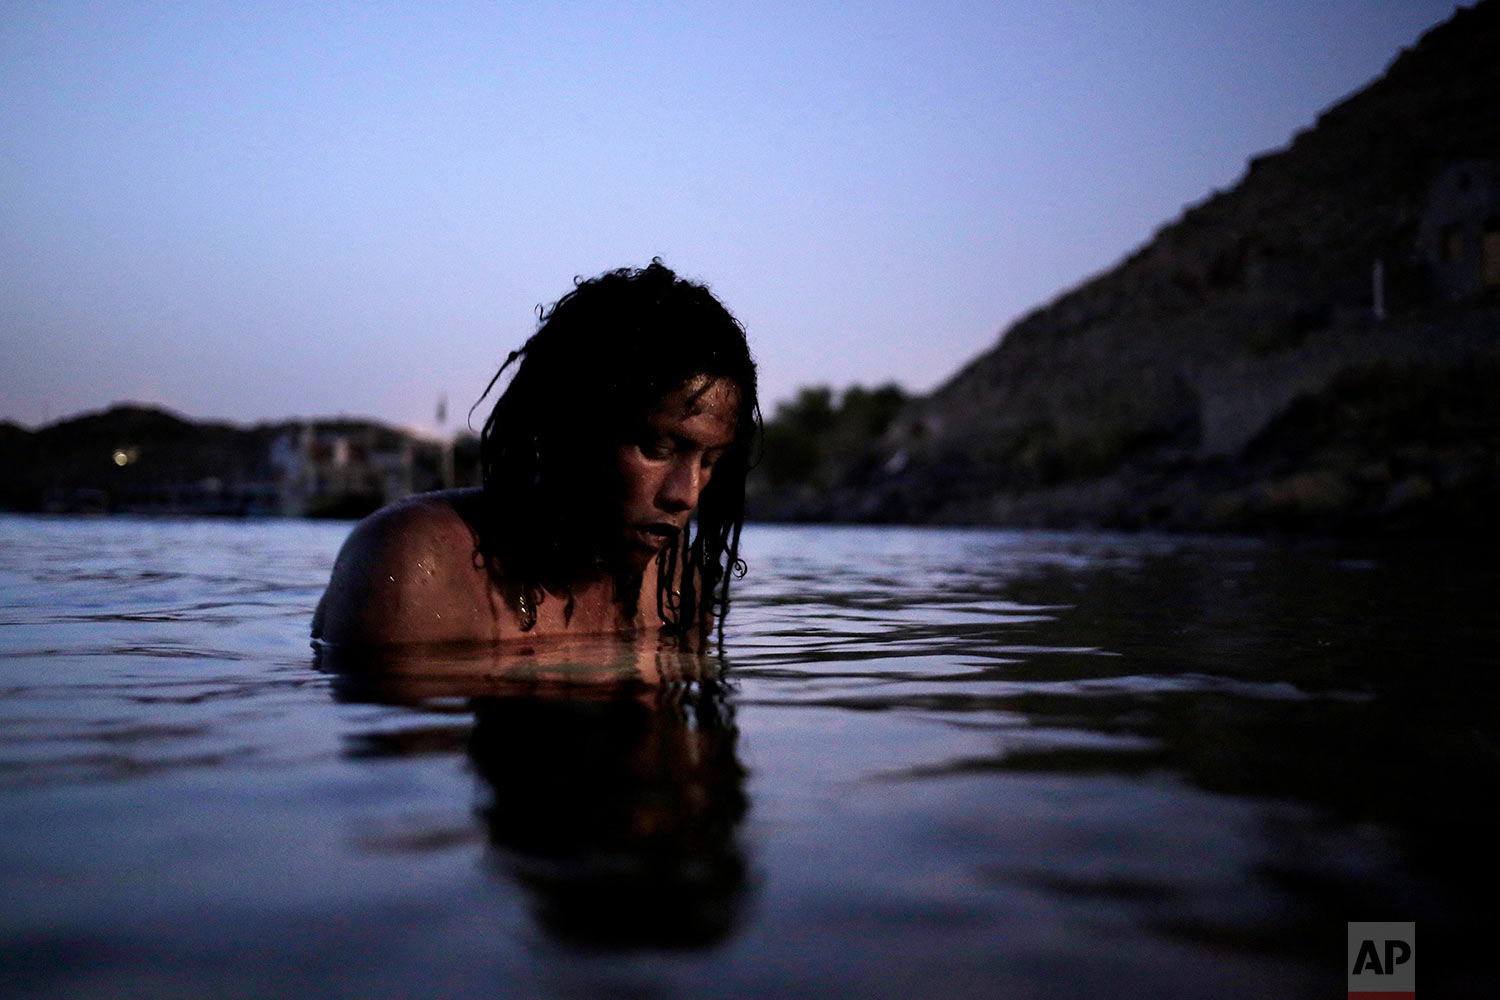 38-year old Nubian Reesha swims in the Nile River on Heisa Island, in Aswan, Egypt on May 10, 2018. The village of Heisa offers a glimpse into what life was like for Nubians in their homeland before the upheavals of the last century. (AP Photo/Nariman El-Mofty)